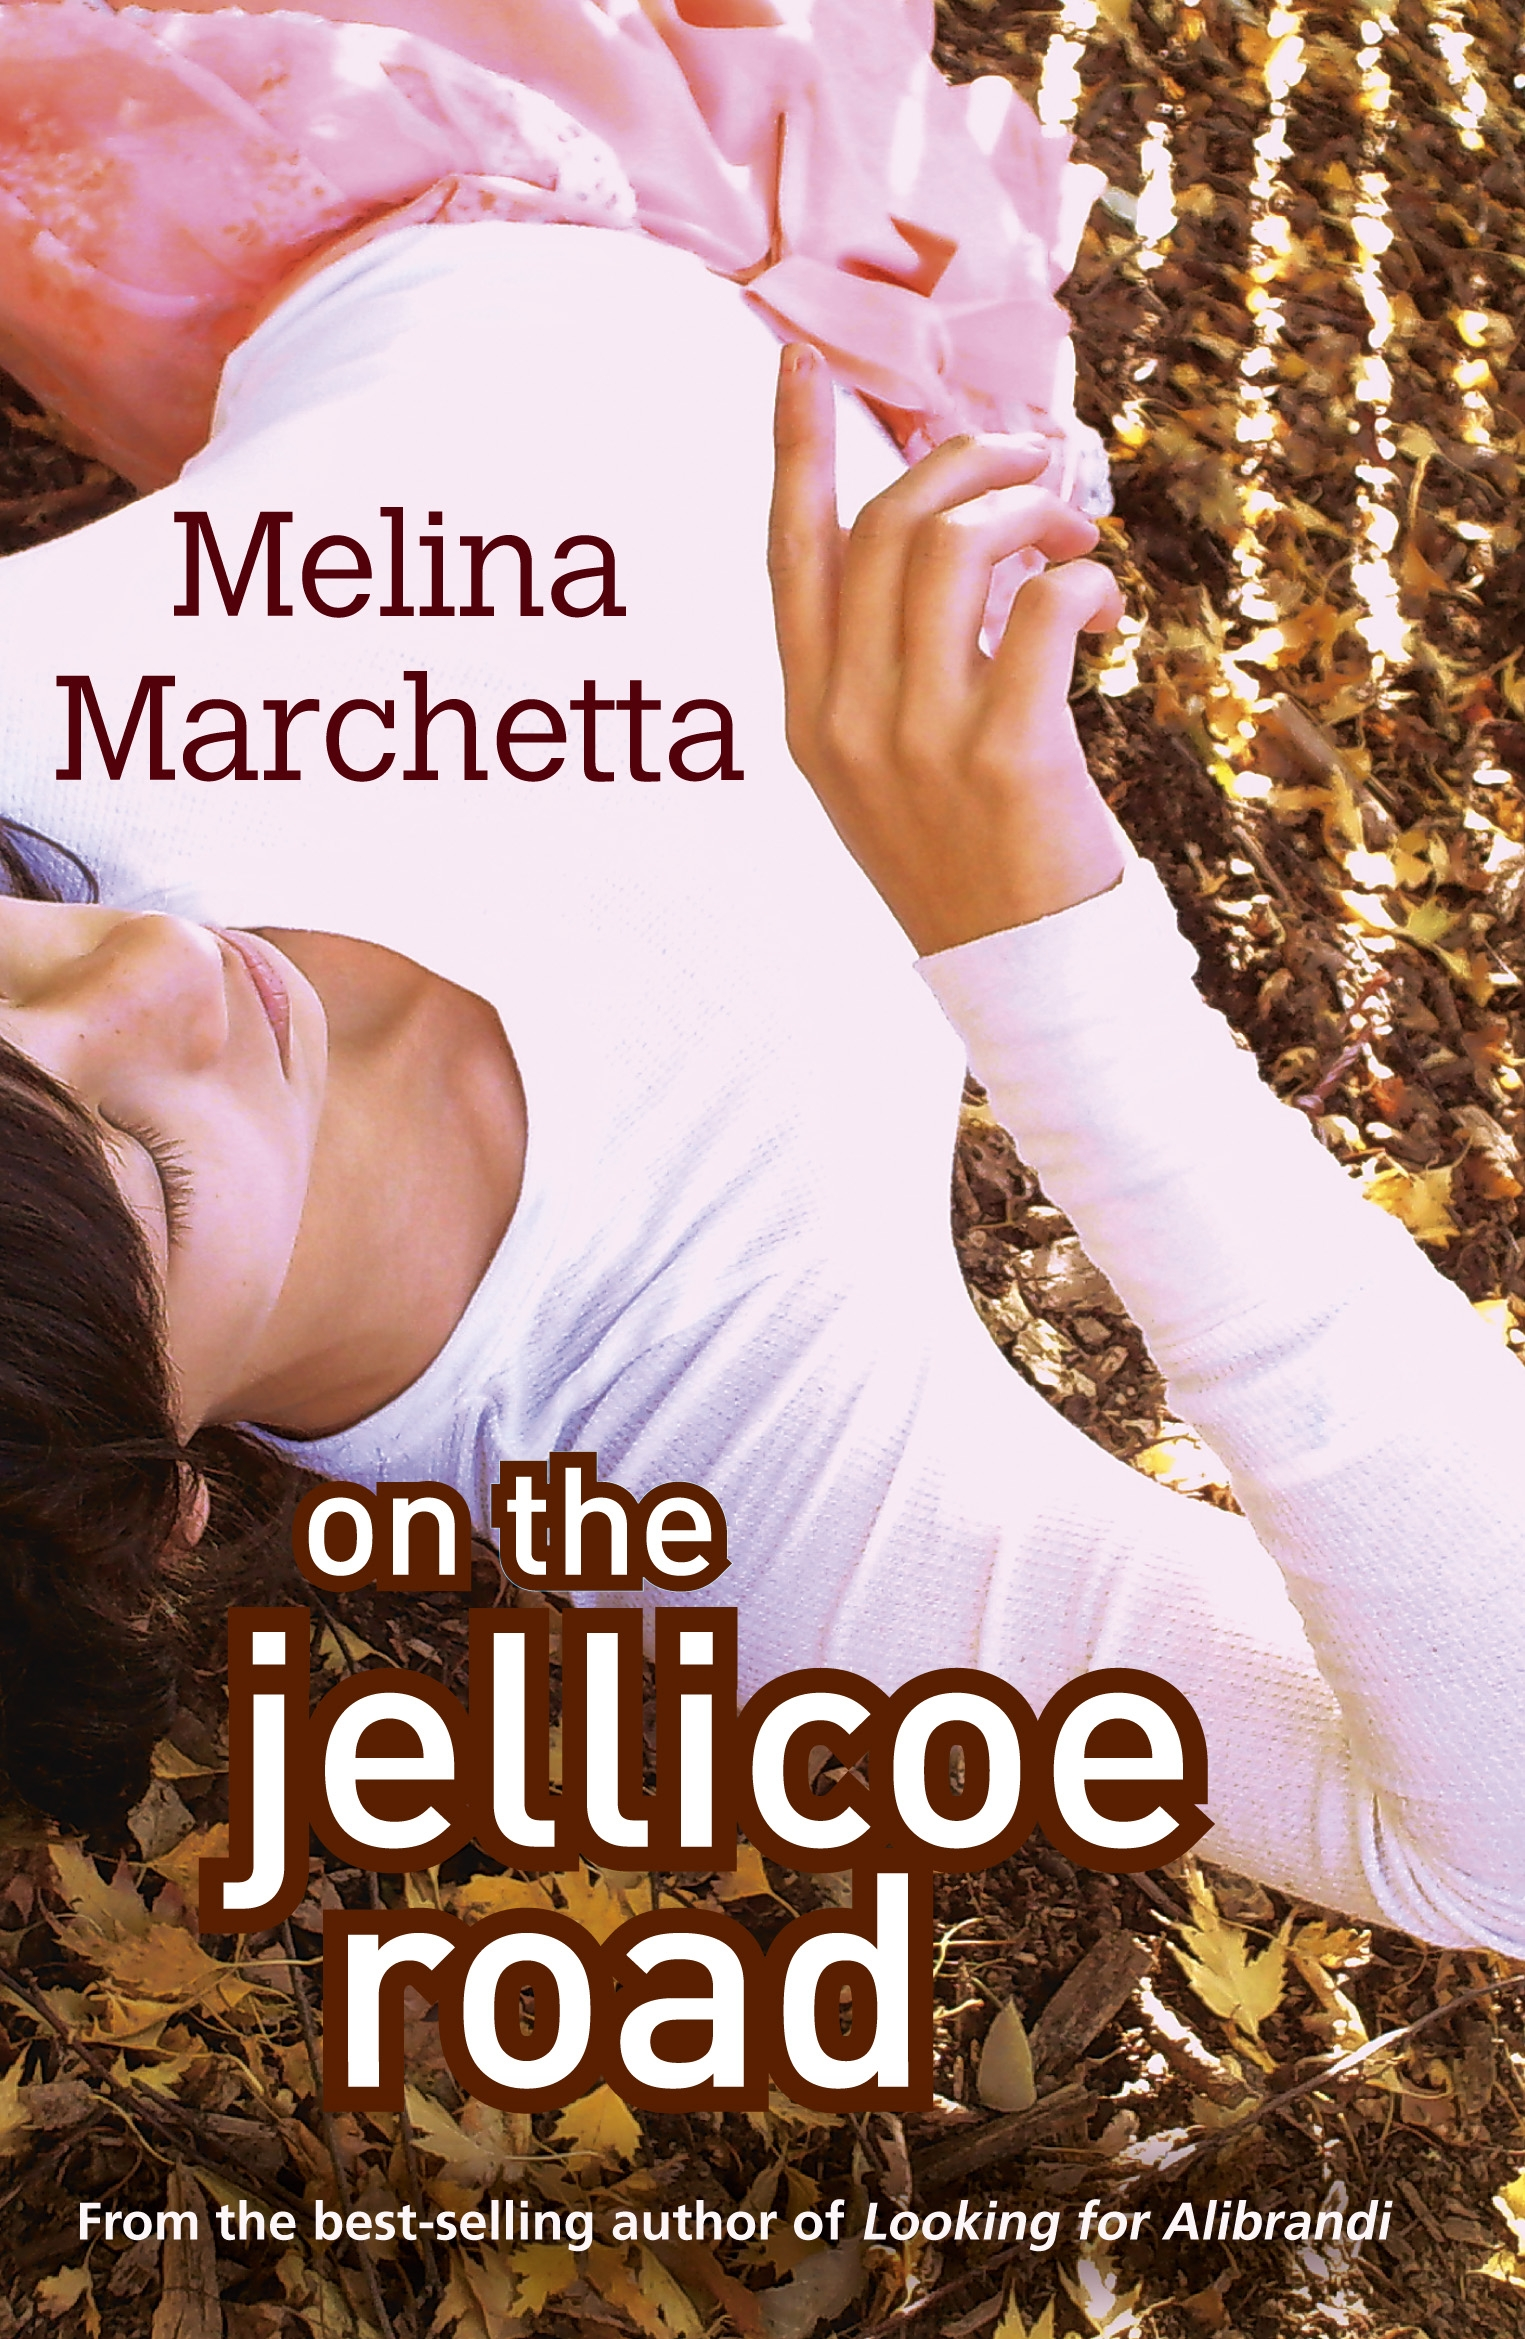 melina marchetta and jellicoe road Preview and download books by melina marchetta, including looking for  alibrandi, saving francesca, on the jellicoe road and many more.